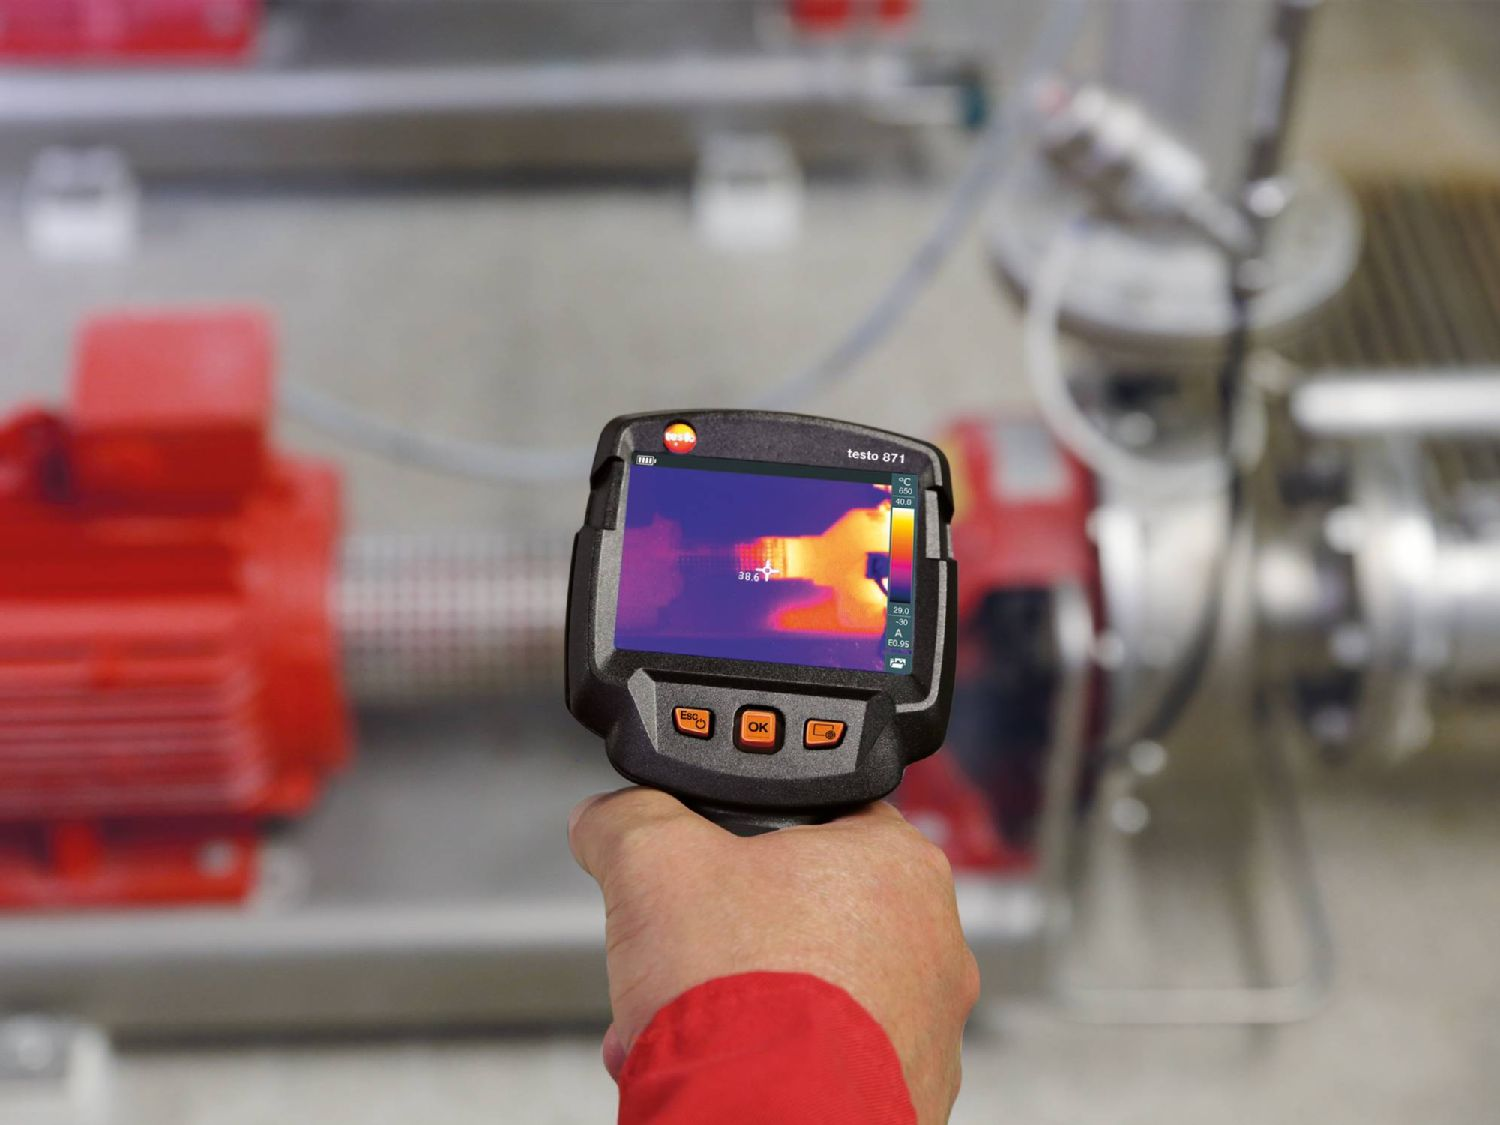 Thermal imager industry